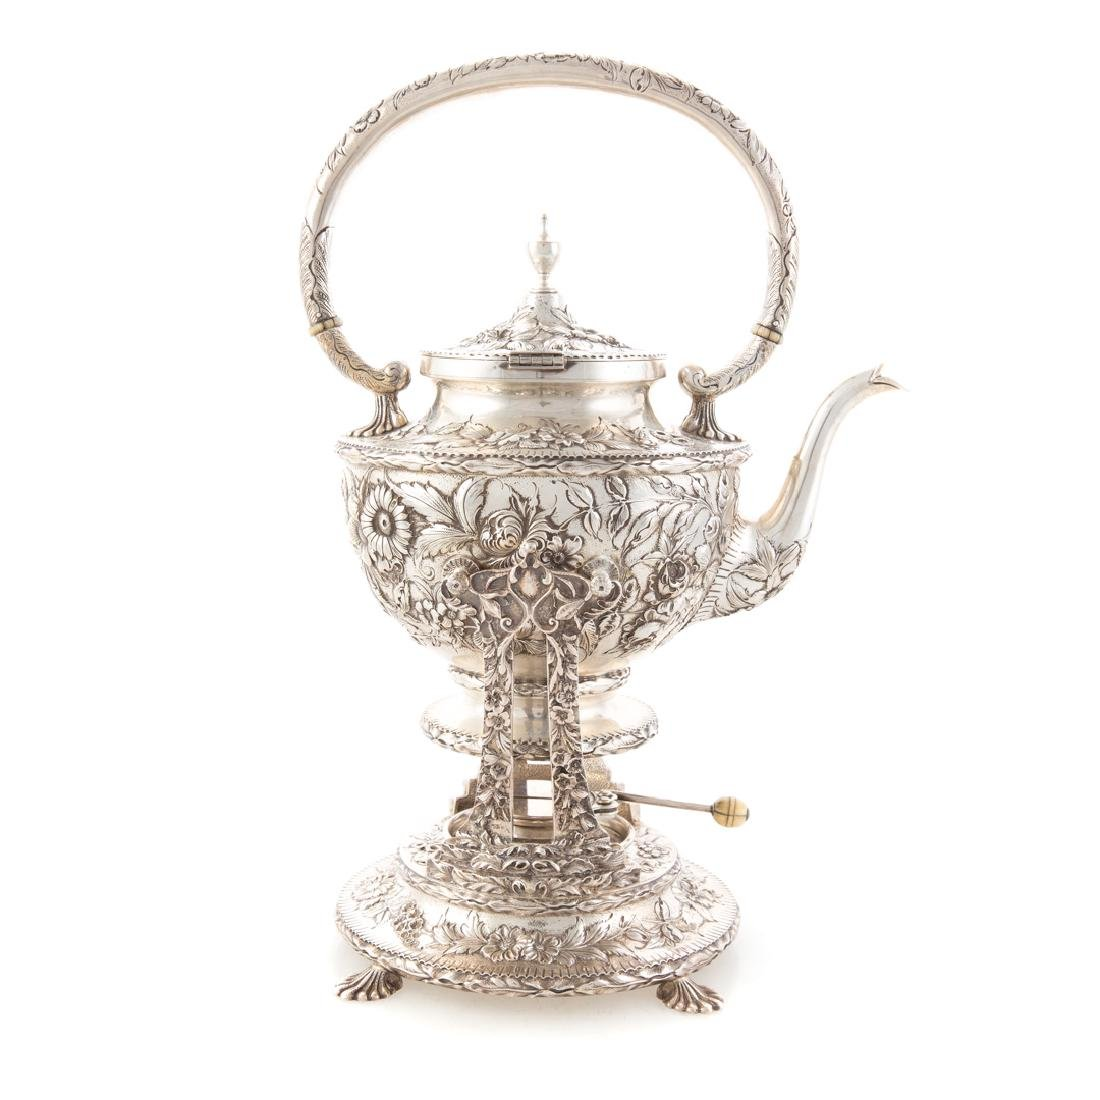 Kirk repousse sterling silver tea service - 2